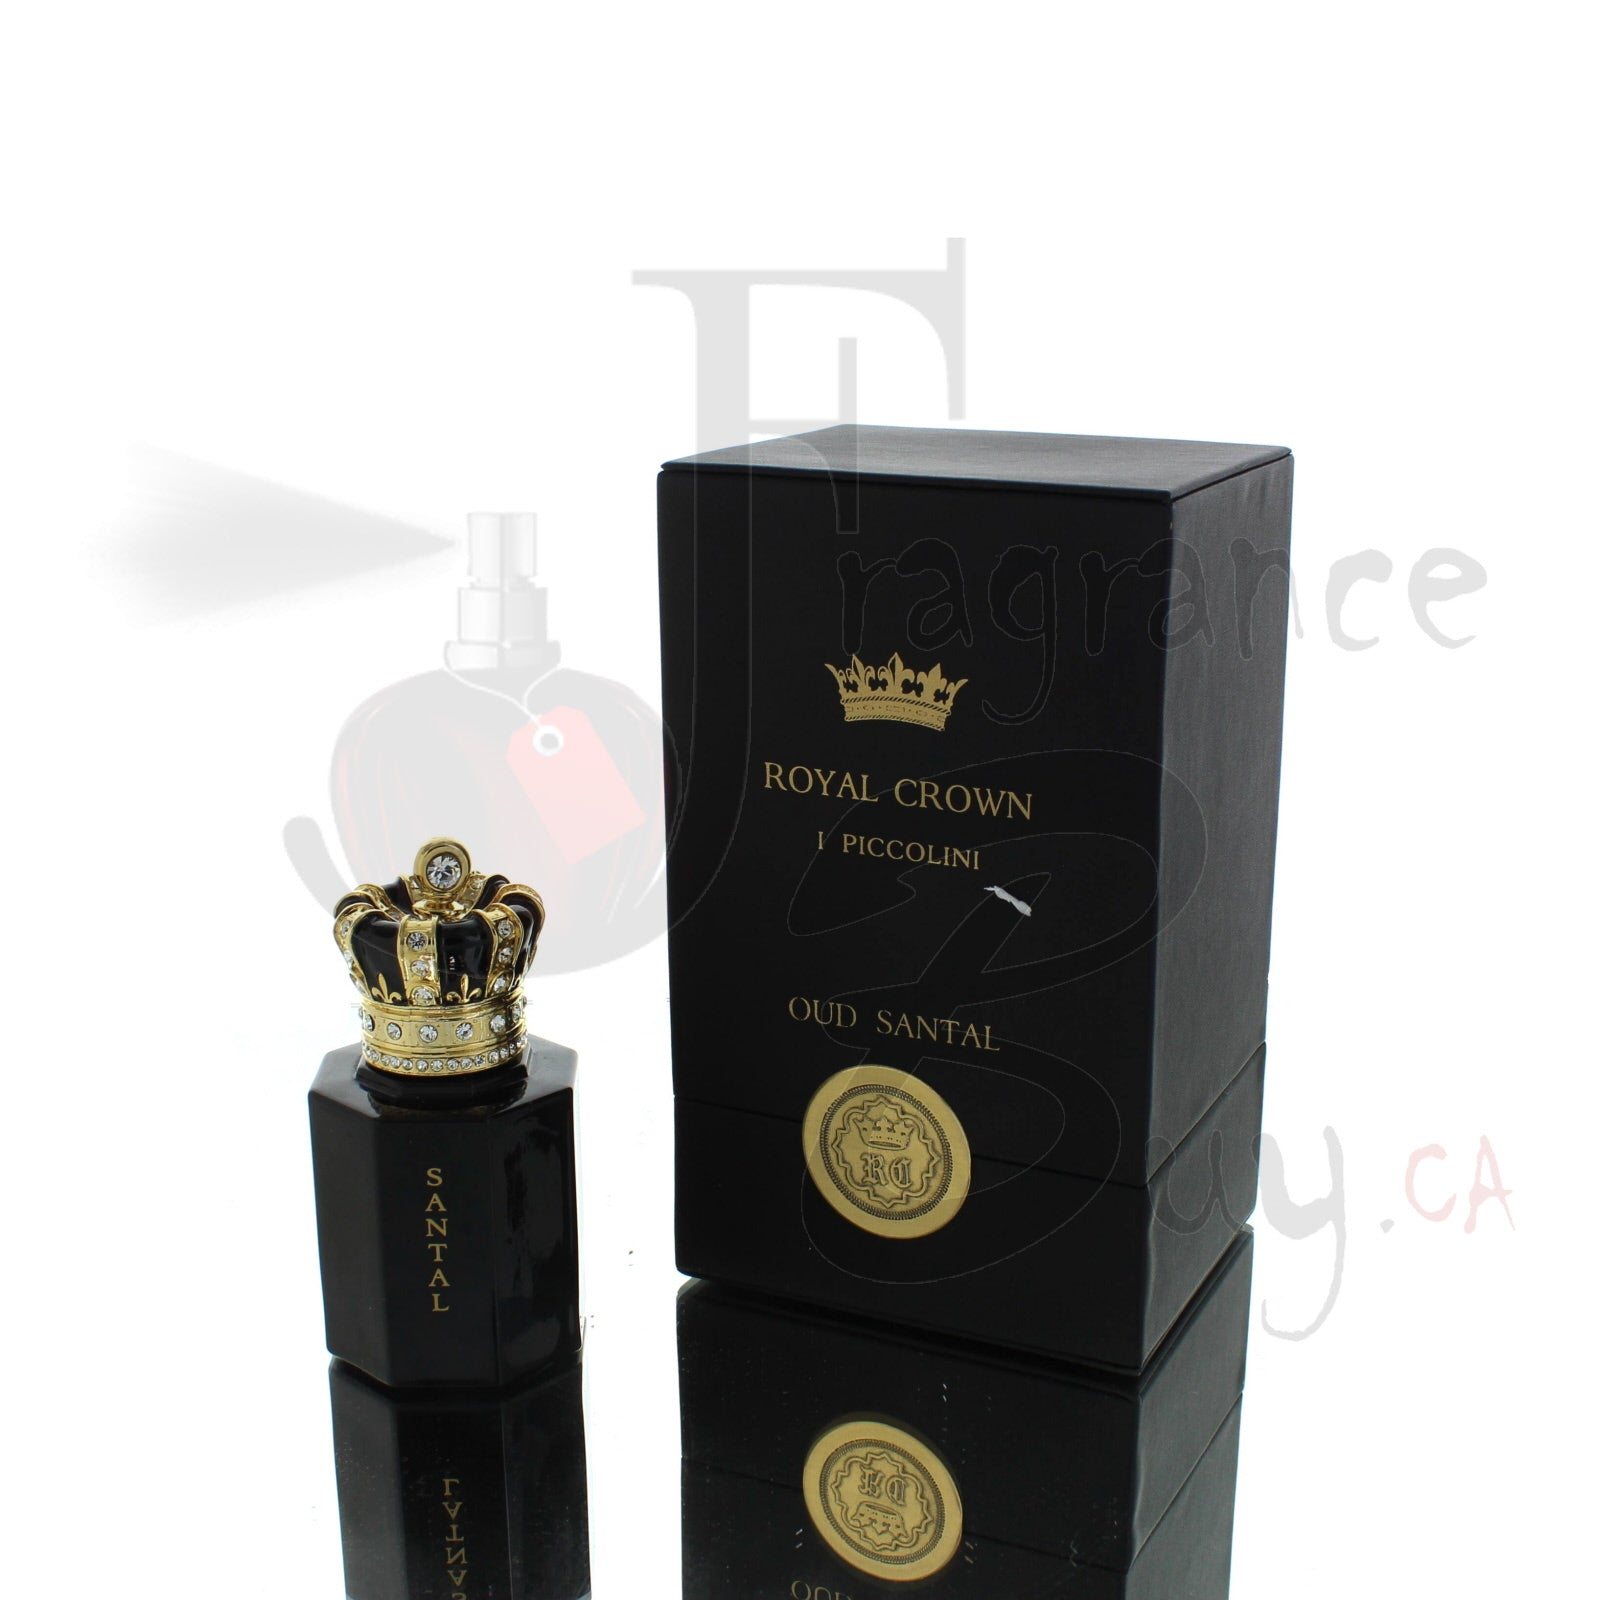 Royal Crown Oud Santal For Man/Woman